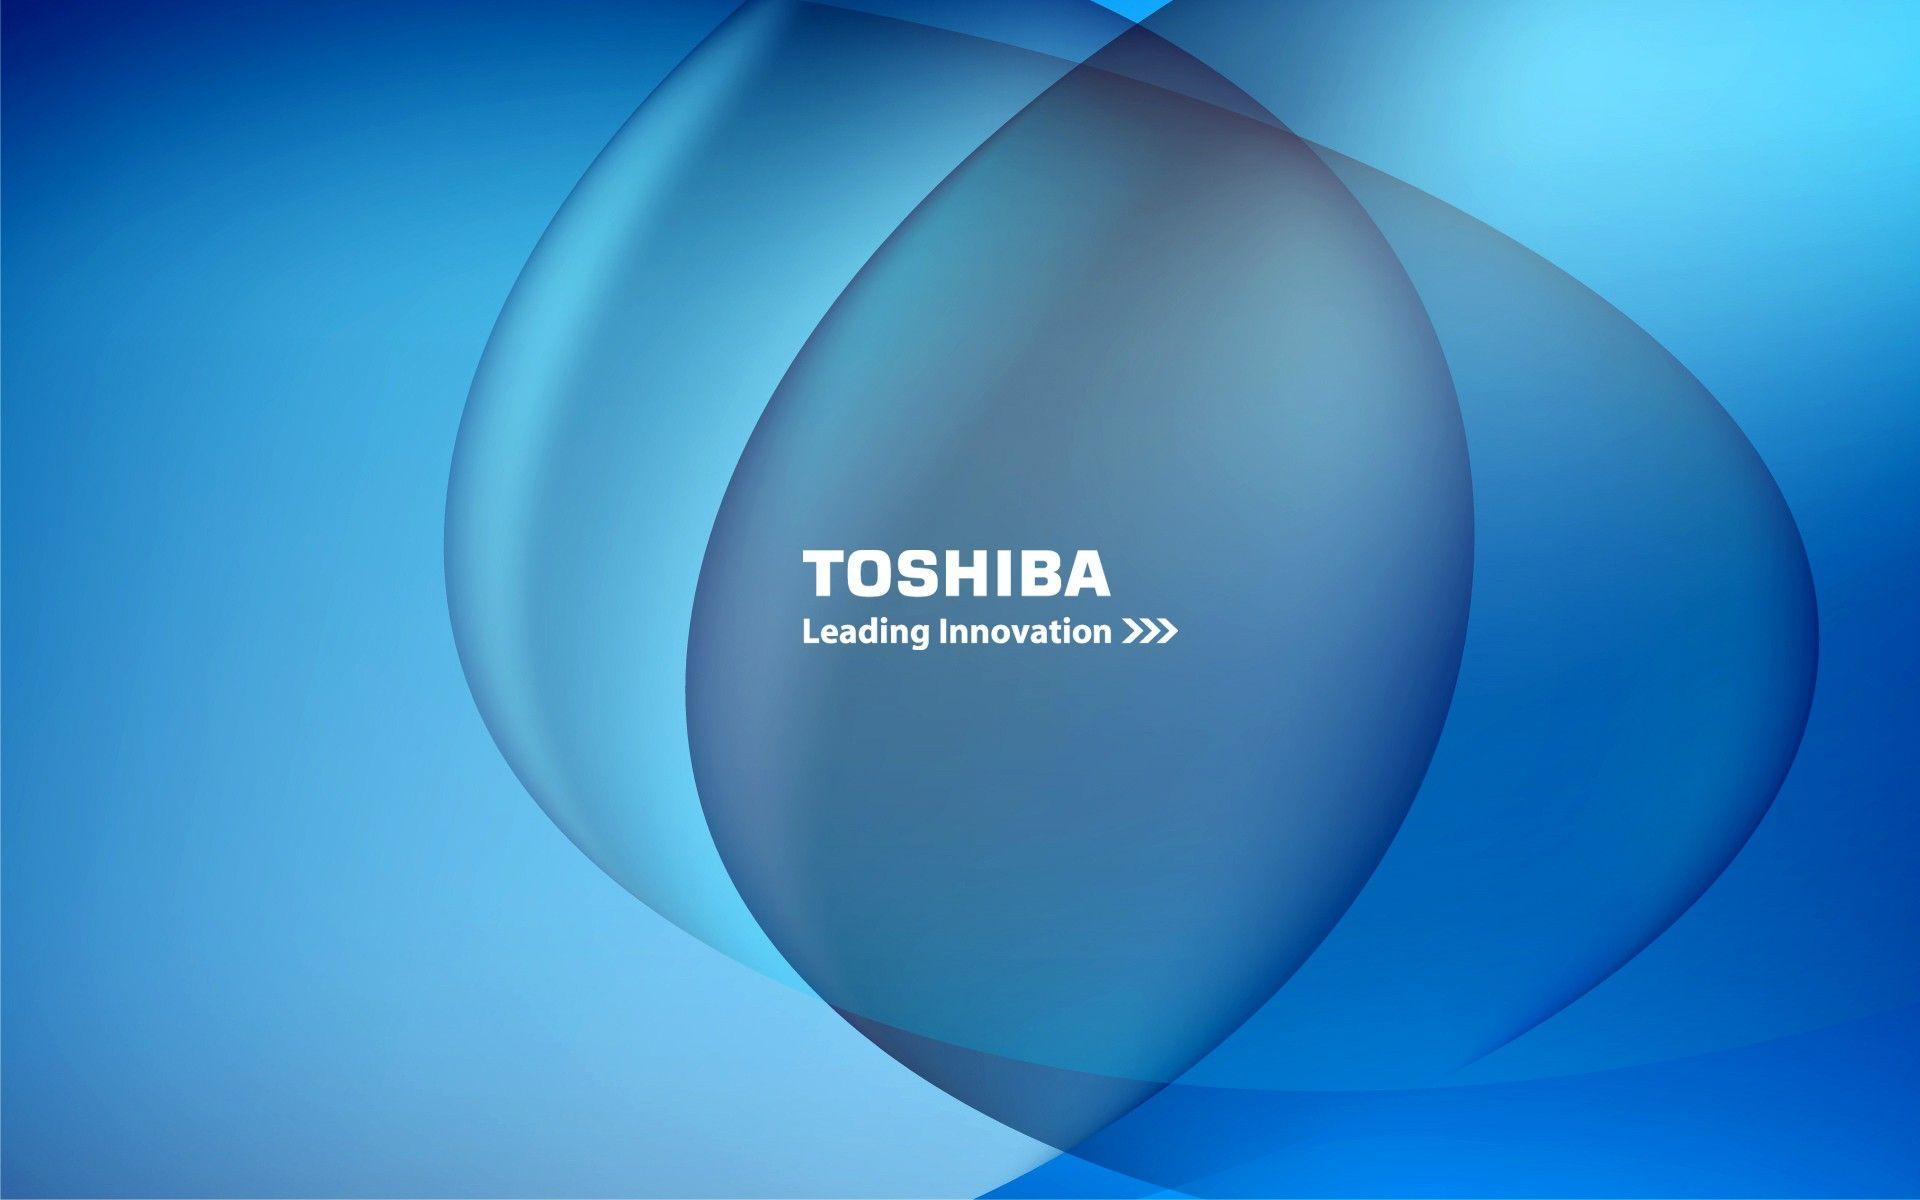 Toshiba wallpapers ·① Download free cool High Resolution backgrounds